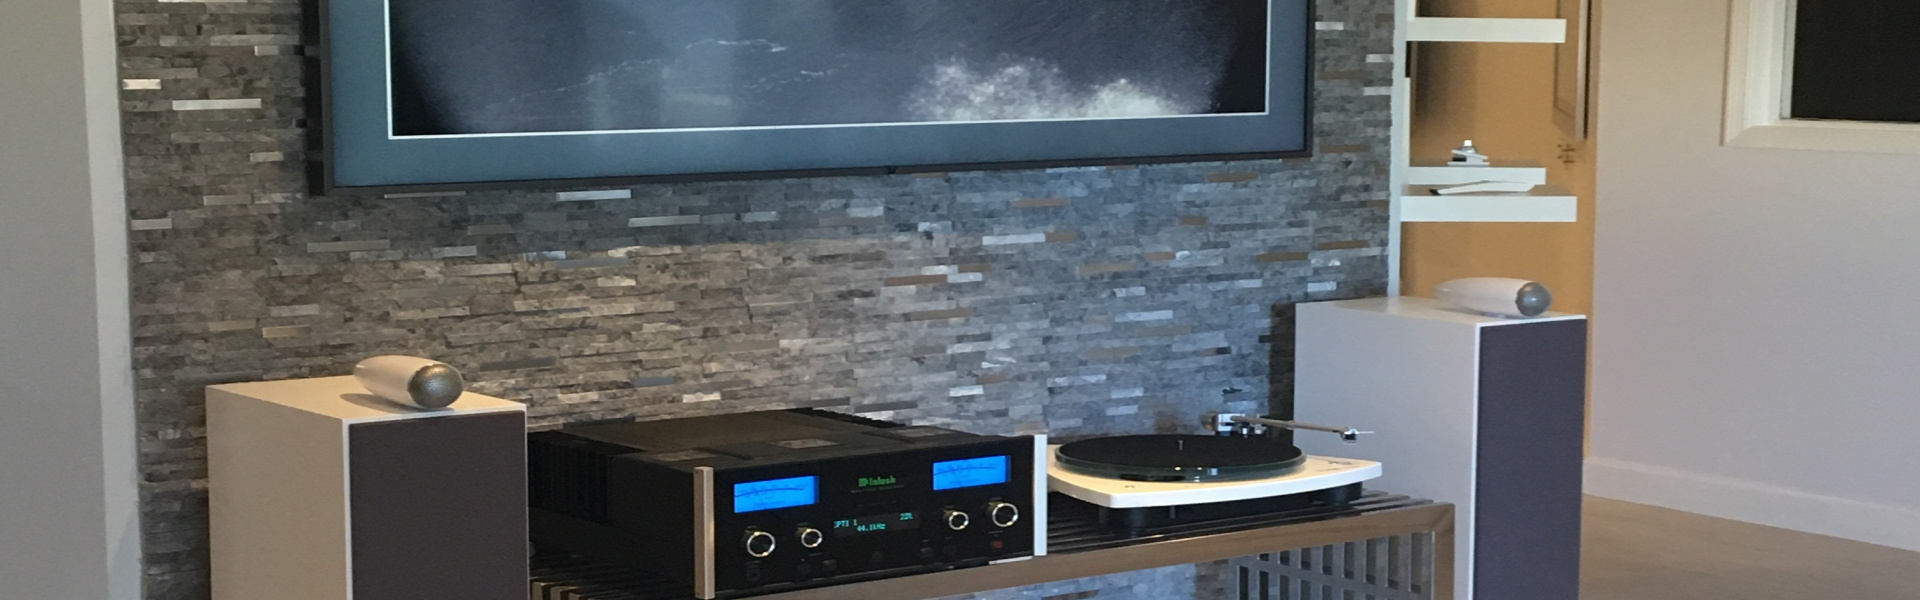 Smart home installation by The Audiohouse for Indian River